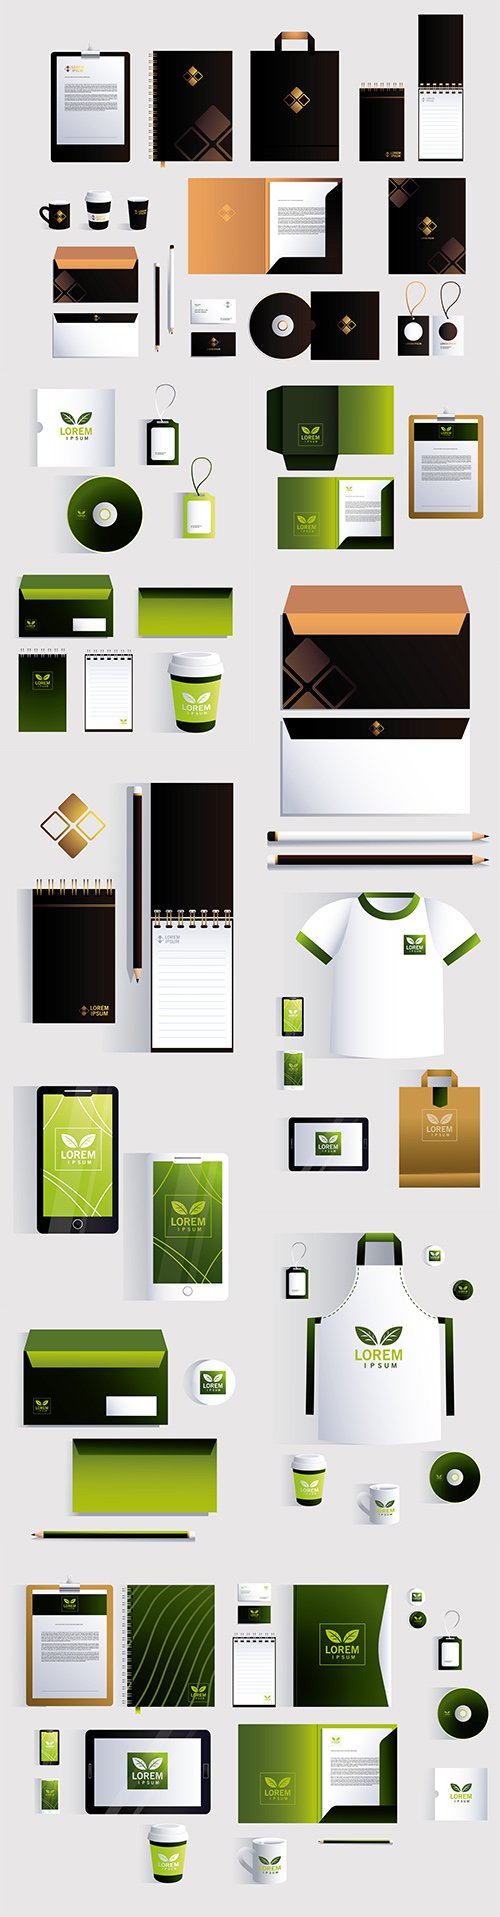 Branded style template of stationery with gold design mark